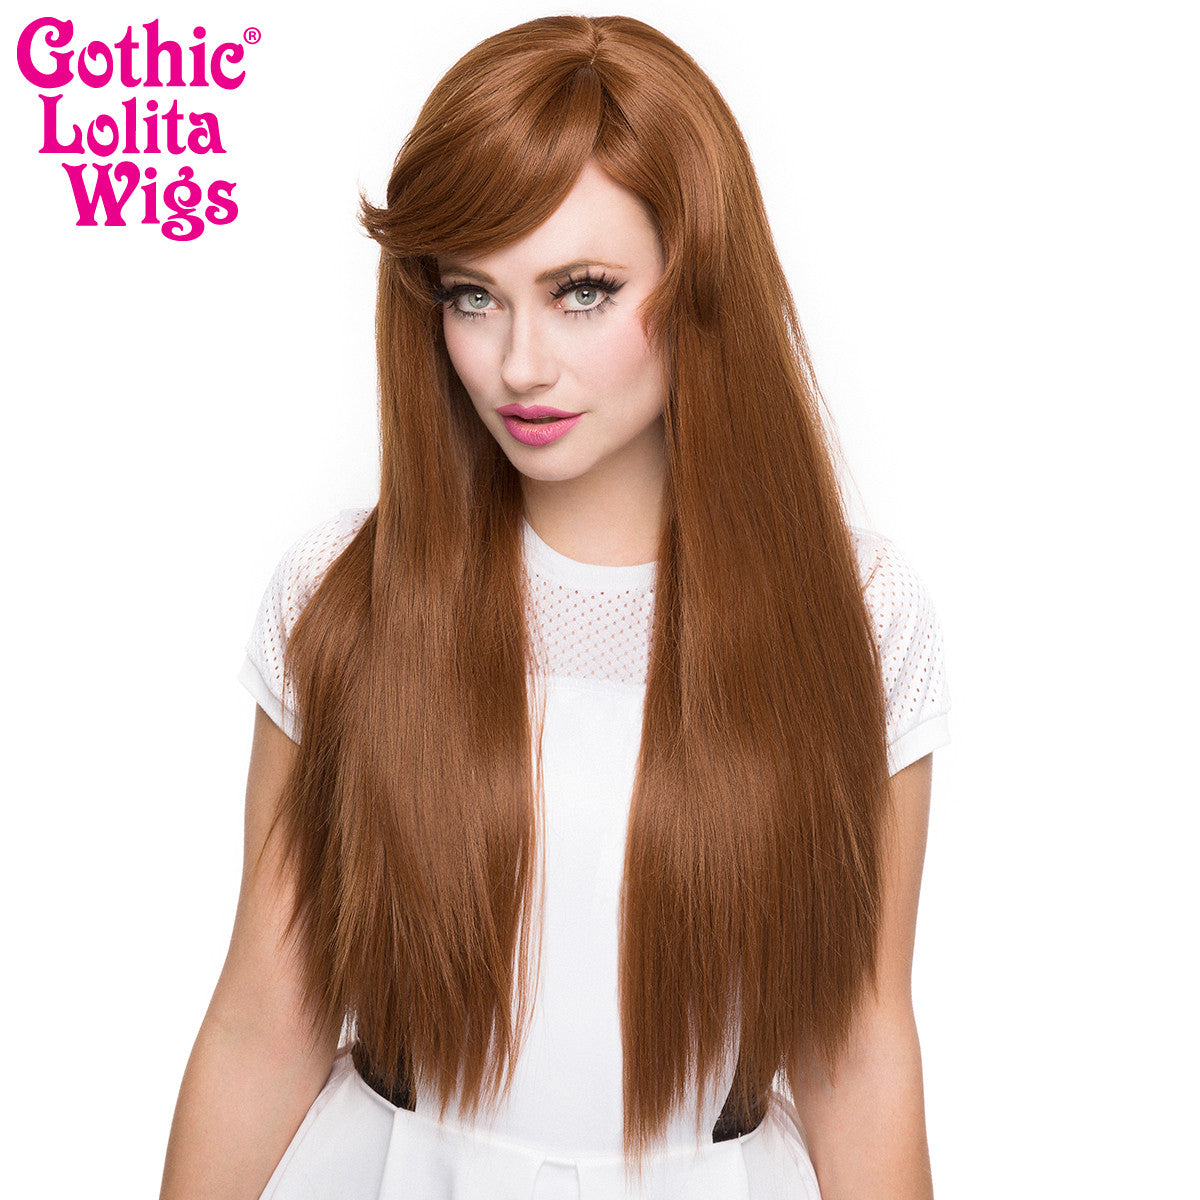 Gothic Lolita Wigs® <br> Bella™ Collection - Caramel Brown Mix -00423